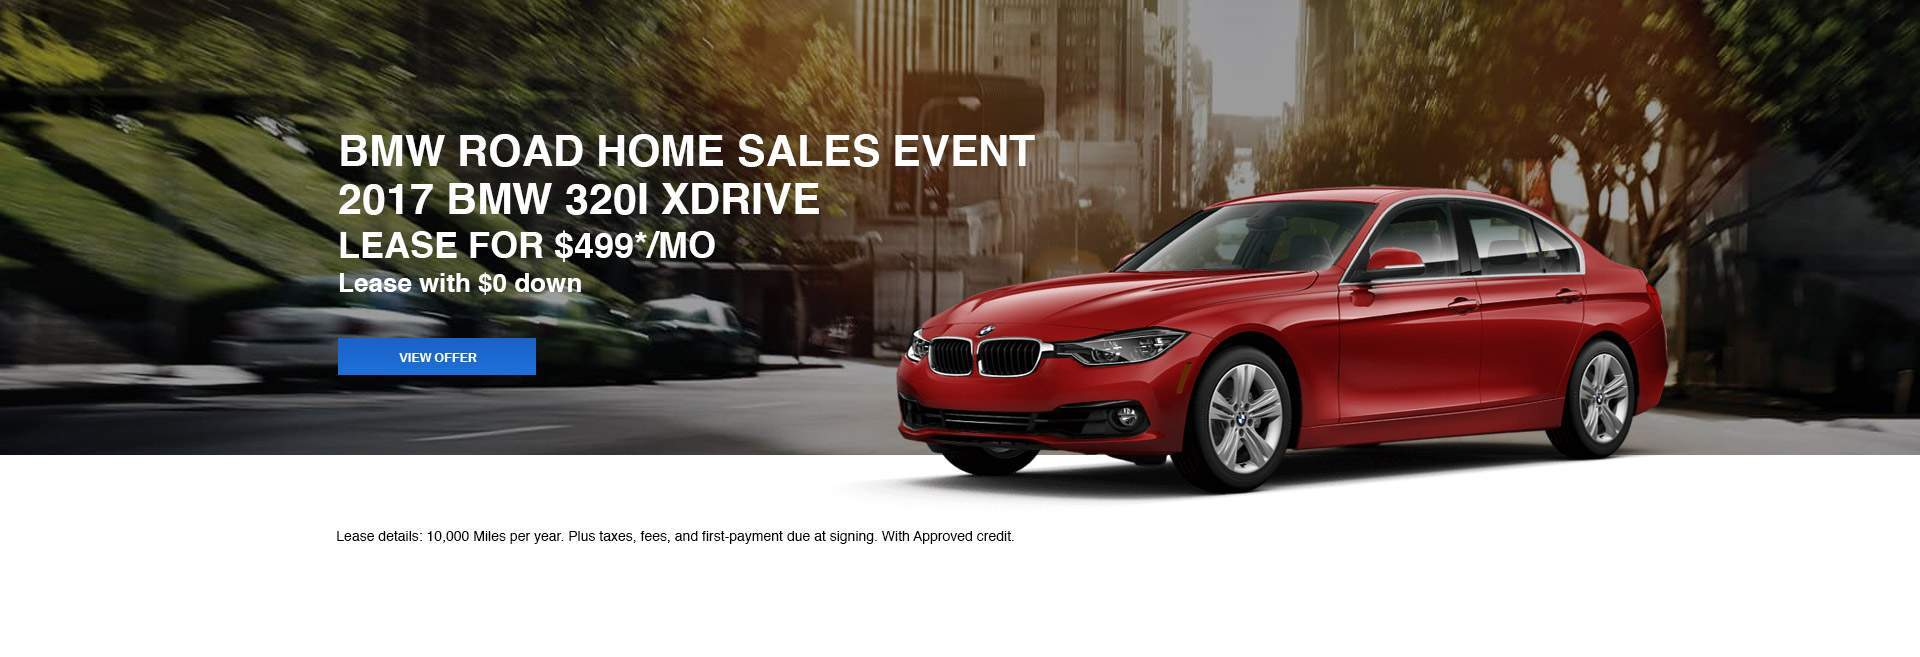 Bmw Login Payment   The Best Famous BMW 2017